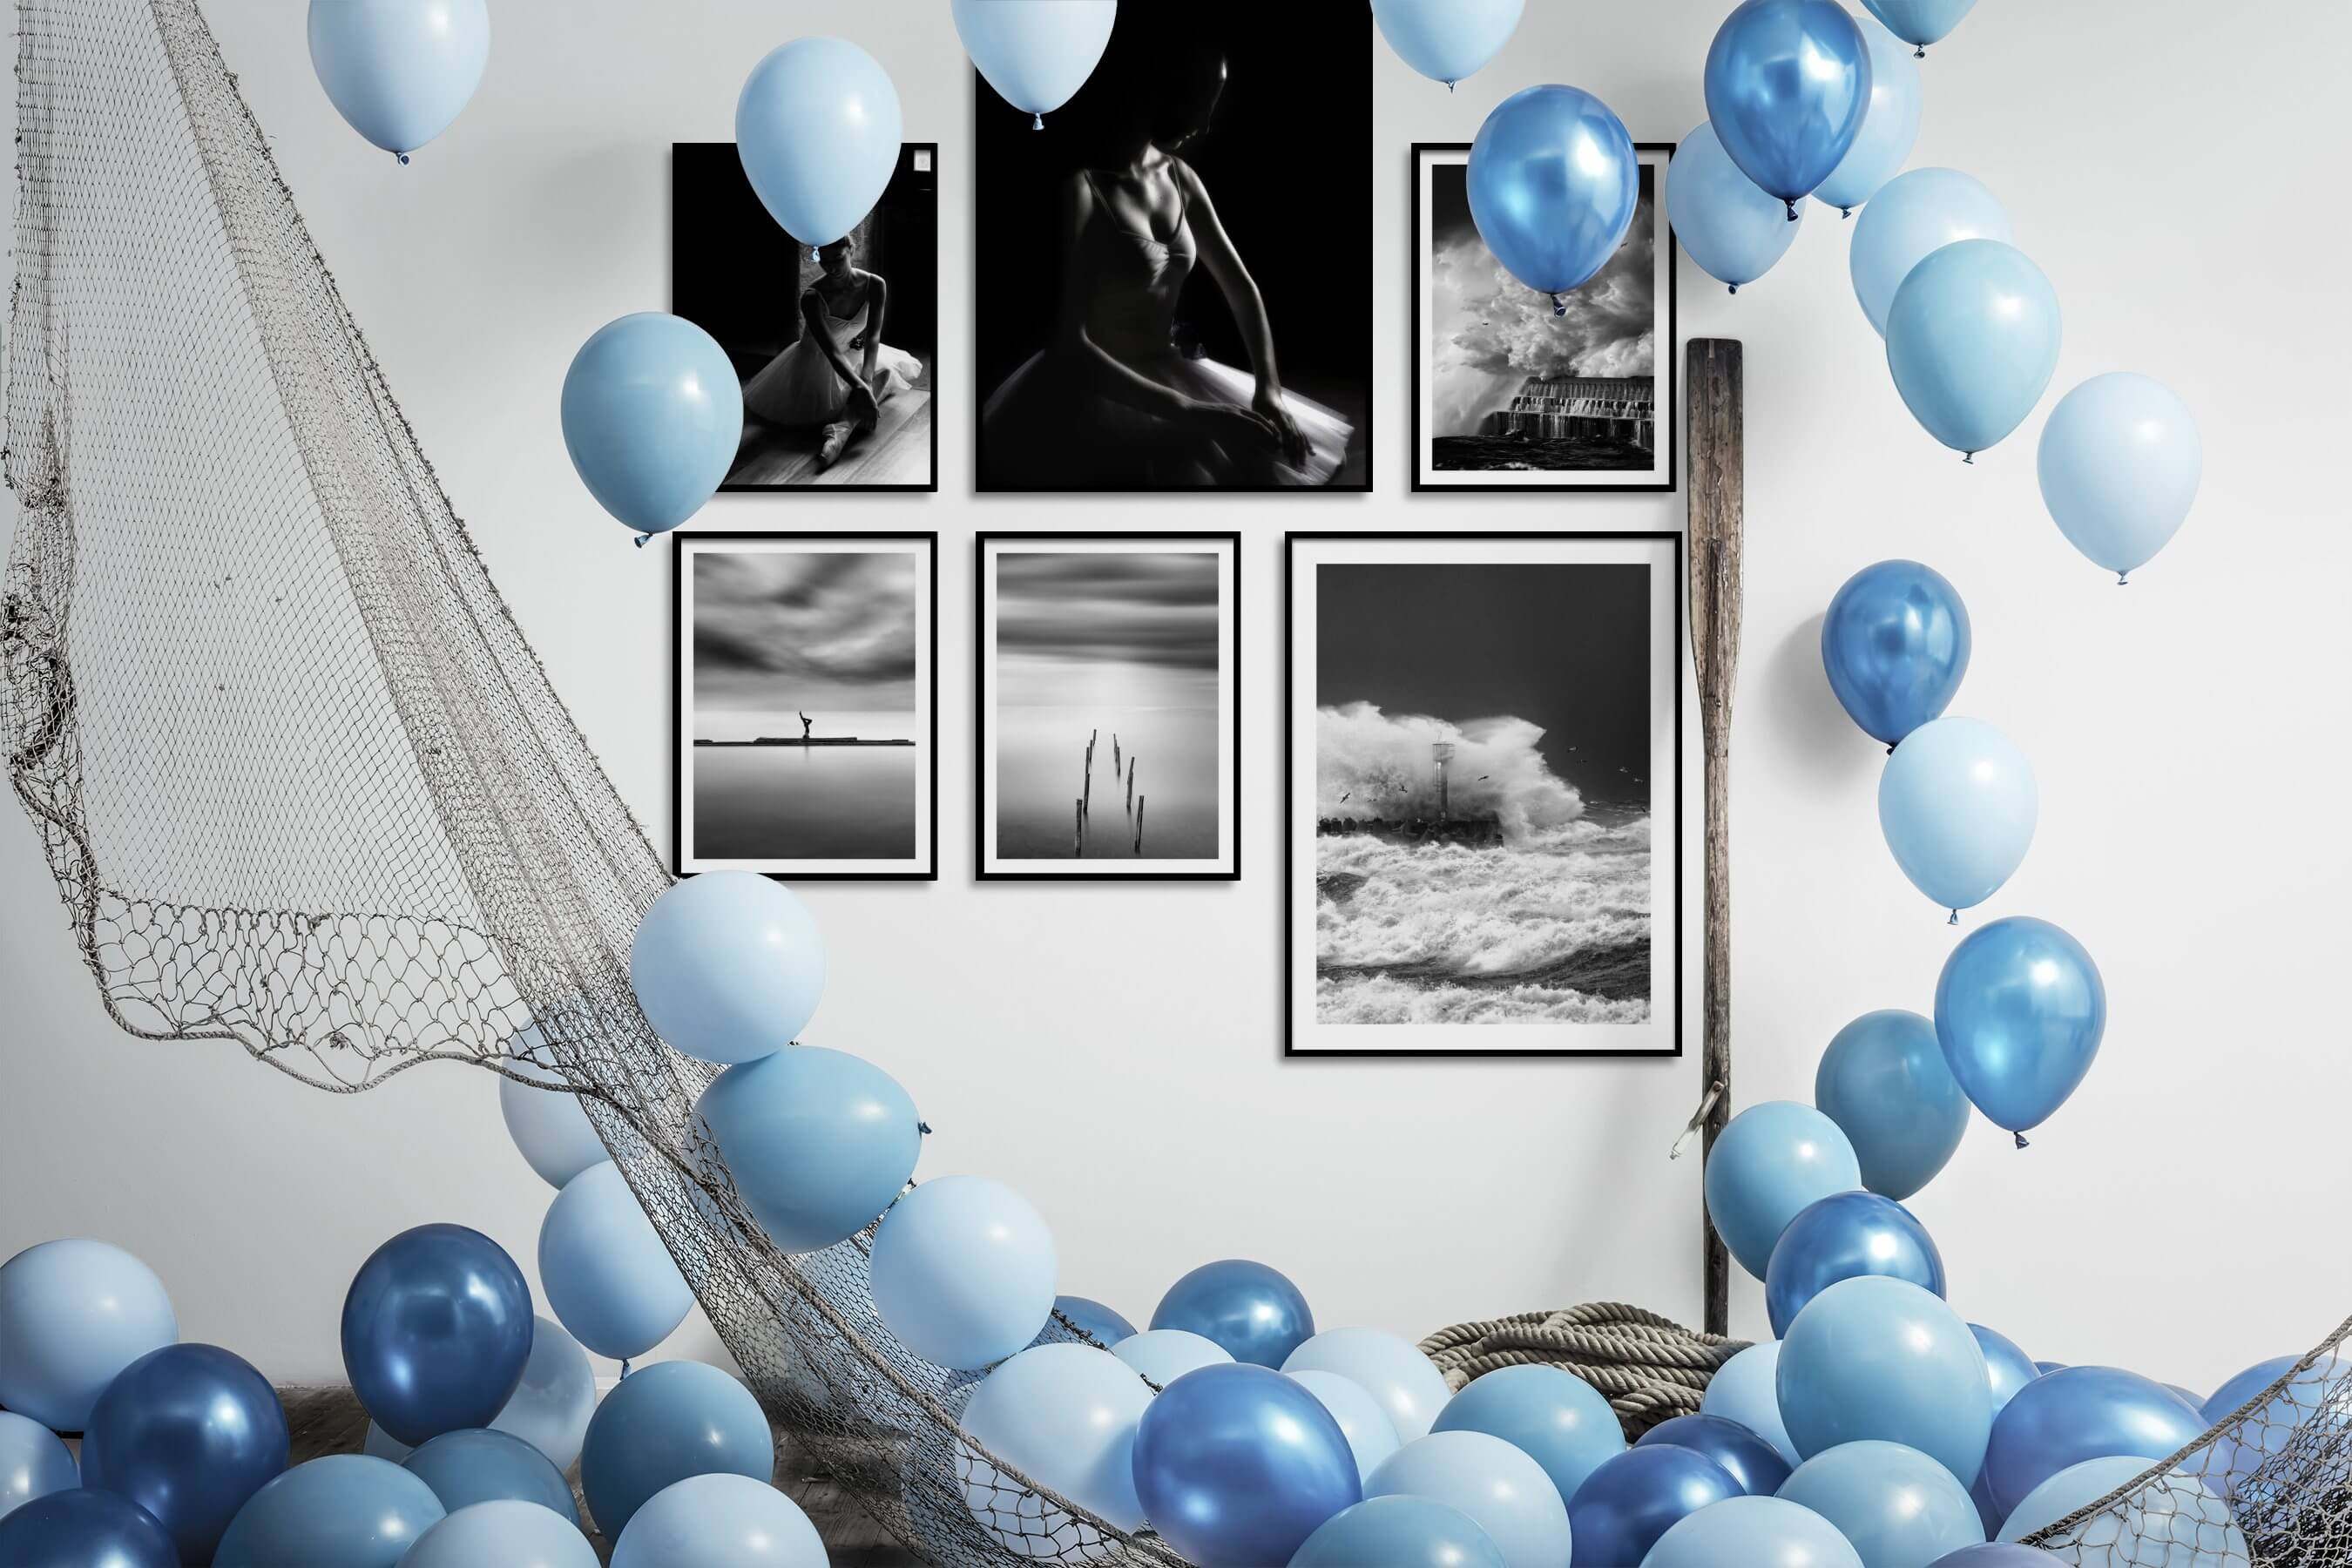 Gallery wall idea with six framed pictures arranged on a wall depicting Fashion & Beauty, Black & White, Dark Tones, For the Minimalist, Beach & Water, and Mindfulness